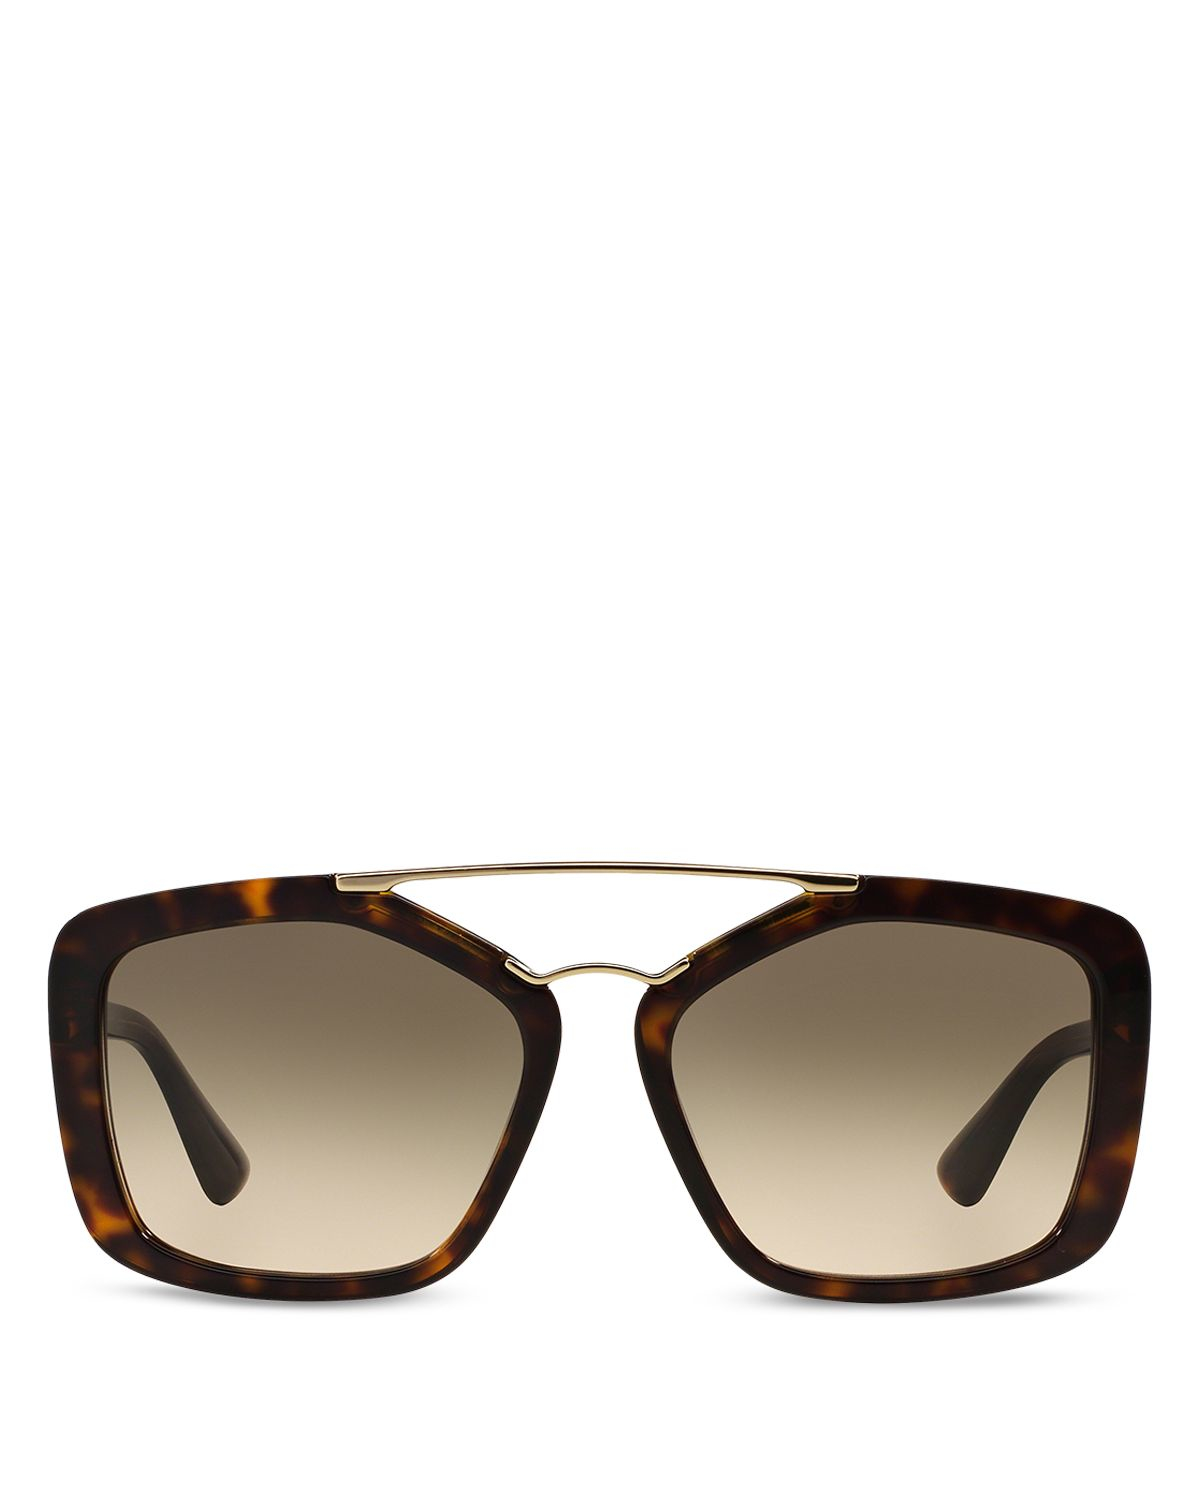 abc31396f4c ... discount code for lyst prada catwalk double bar square sunglasses 56mm  in brown f91f4 3cce1